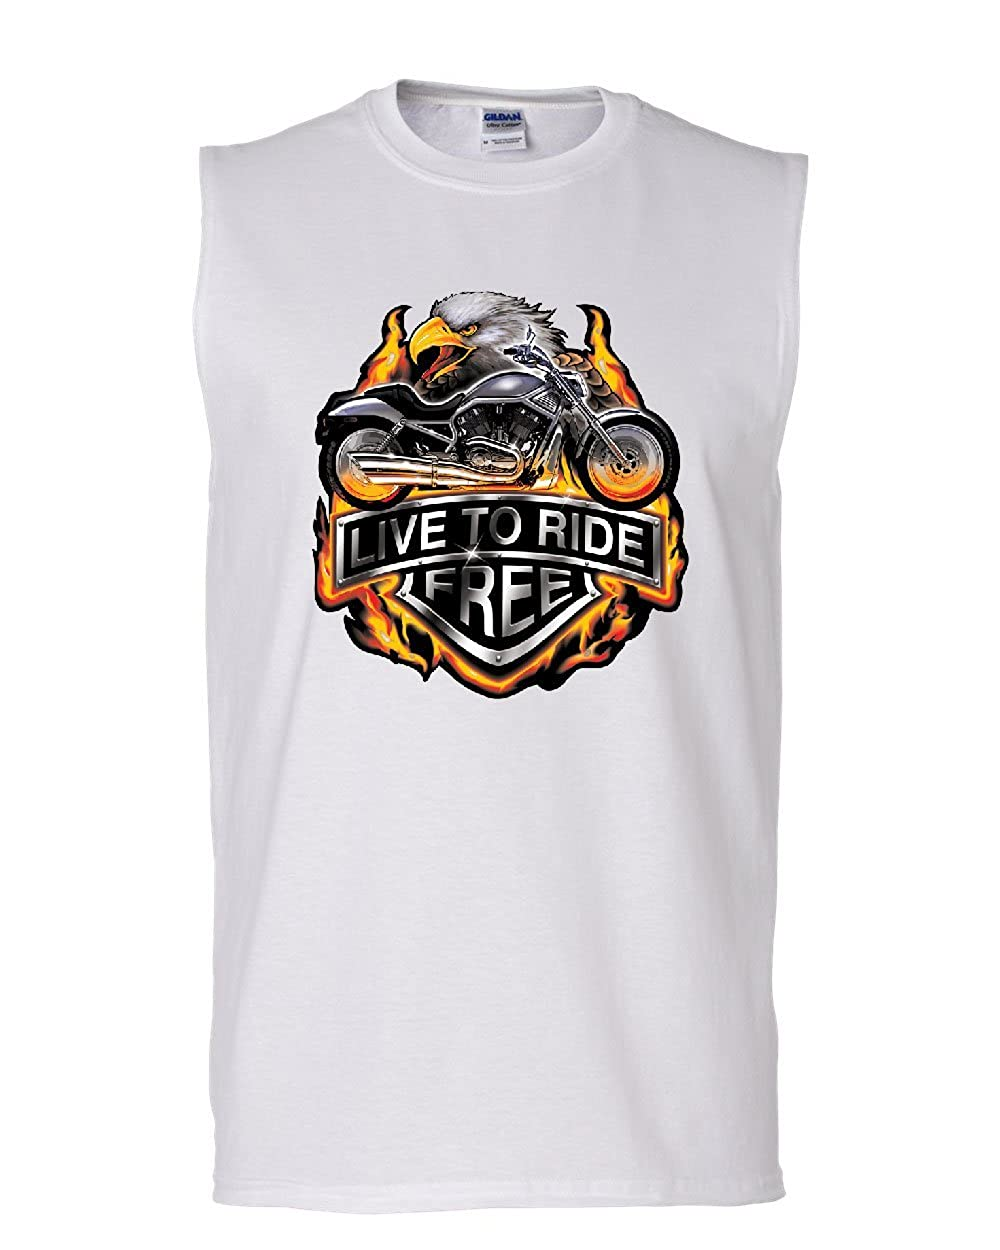 Live to Ride Muscle Shirt Flaming Eagle /& Bike Biker MC Sleeveless